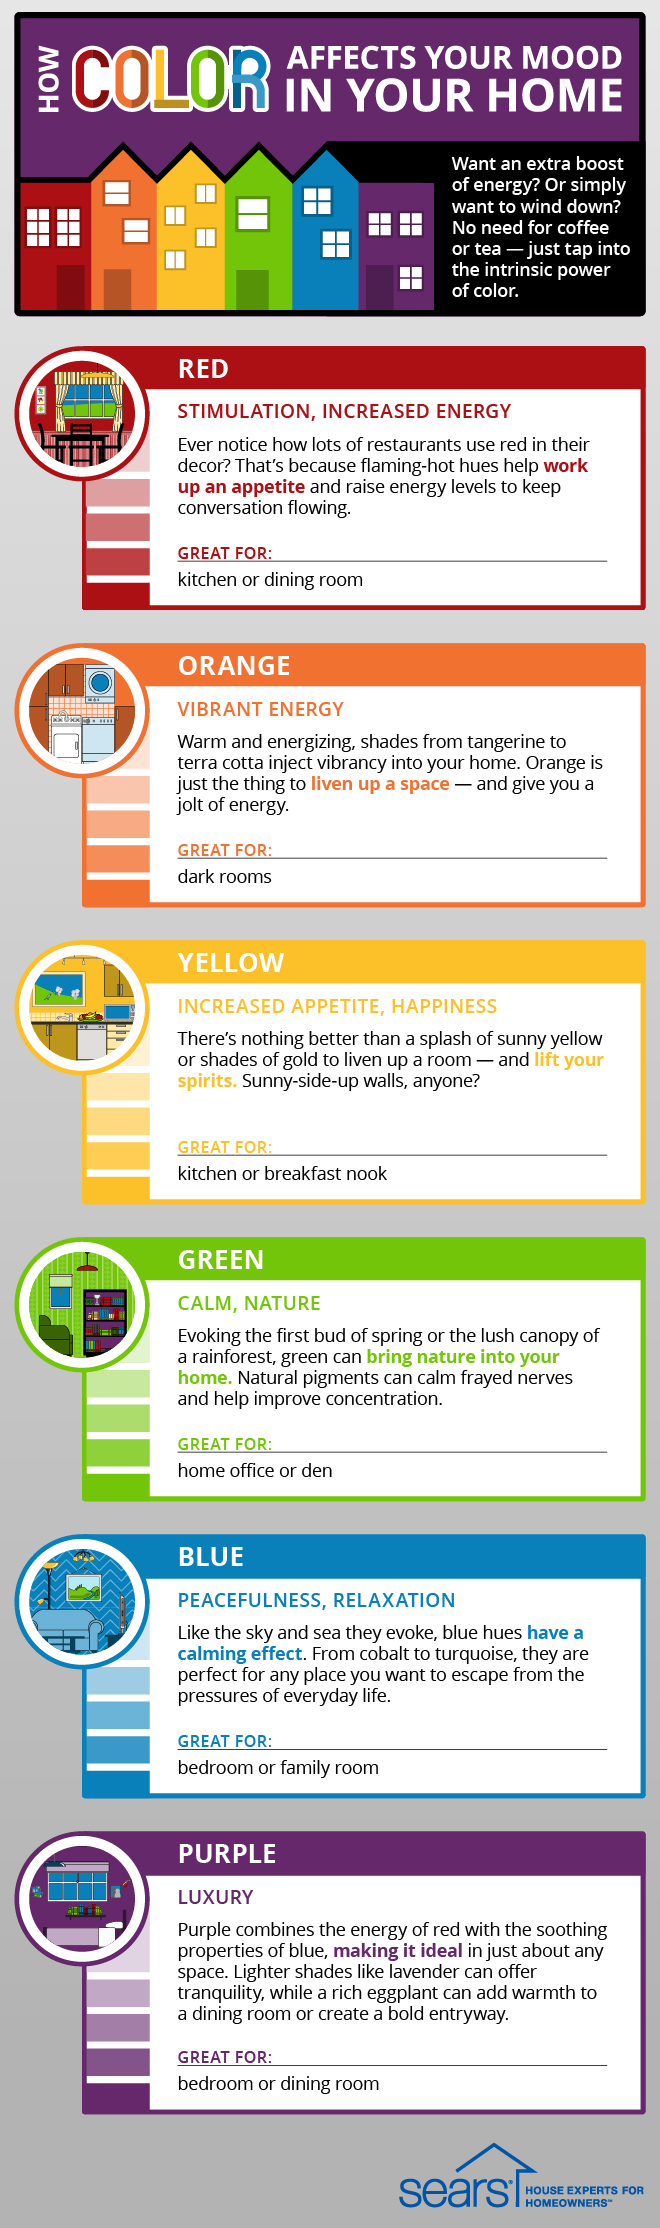 Colors Mood how color affects your mood - home design